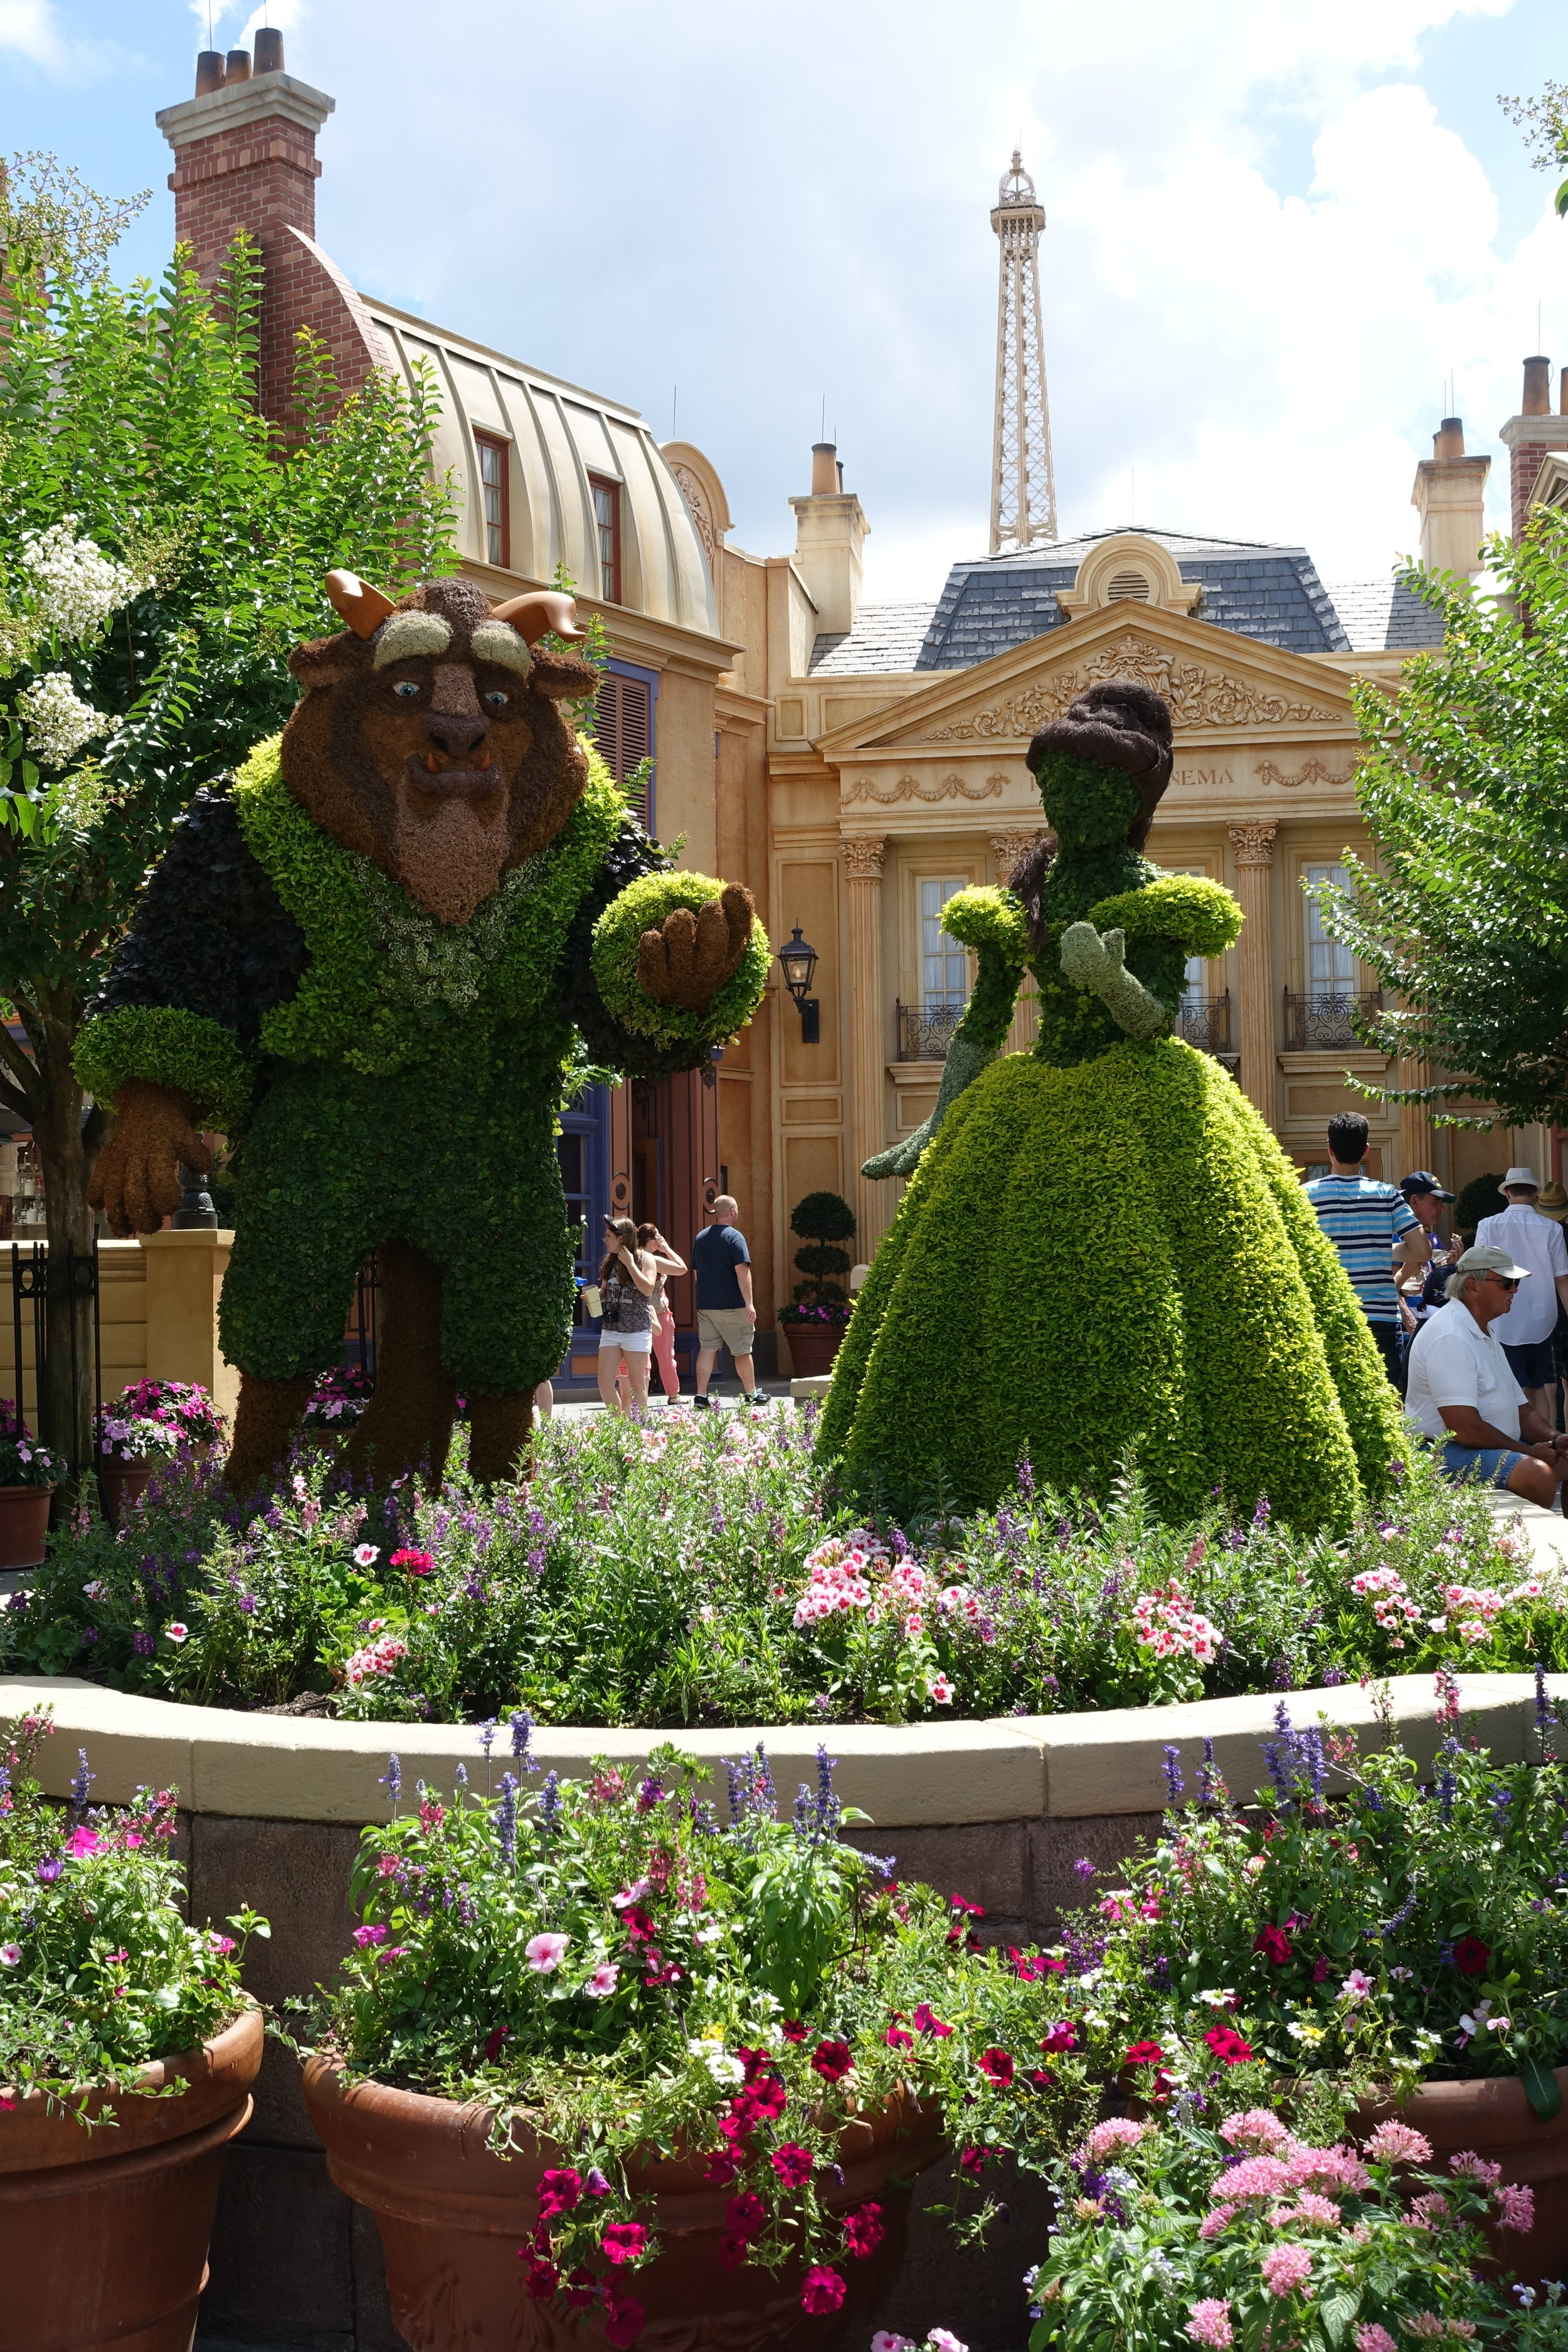 Belle and Beast topiary in the France pavilion.